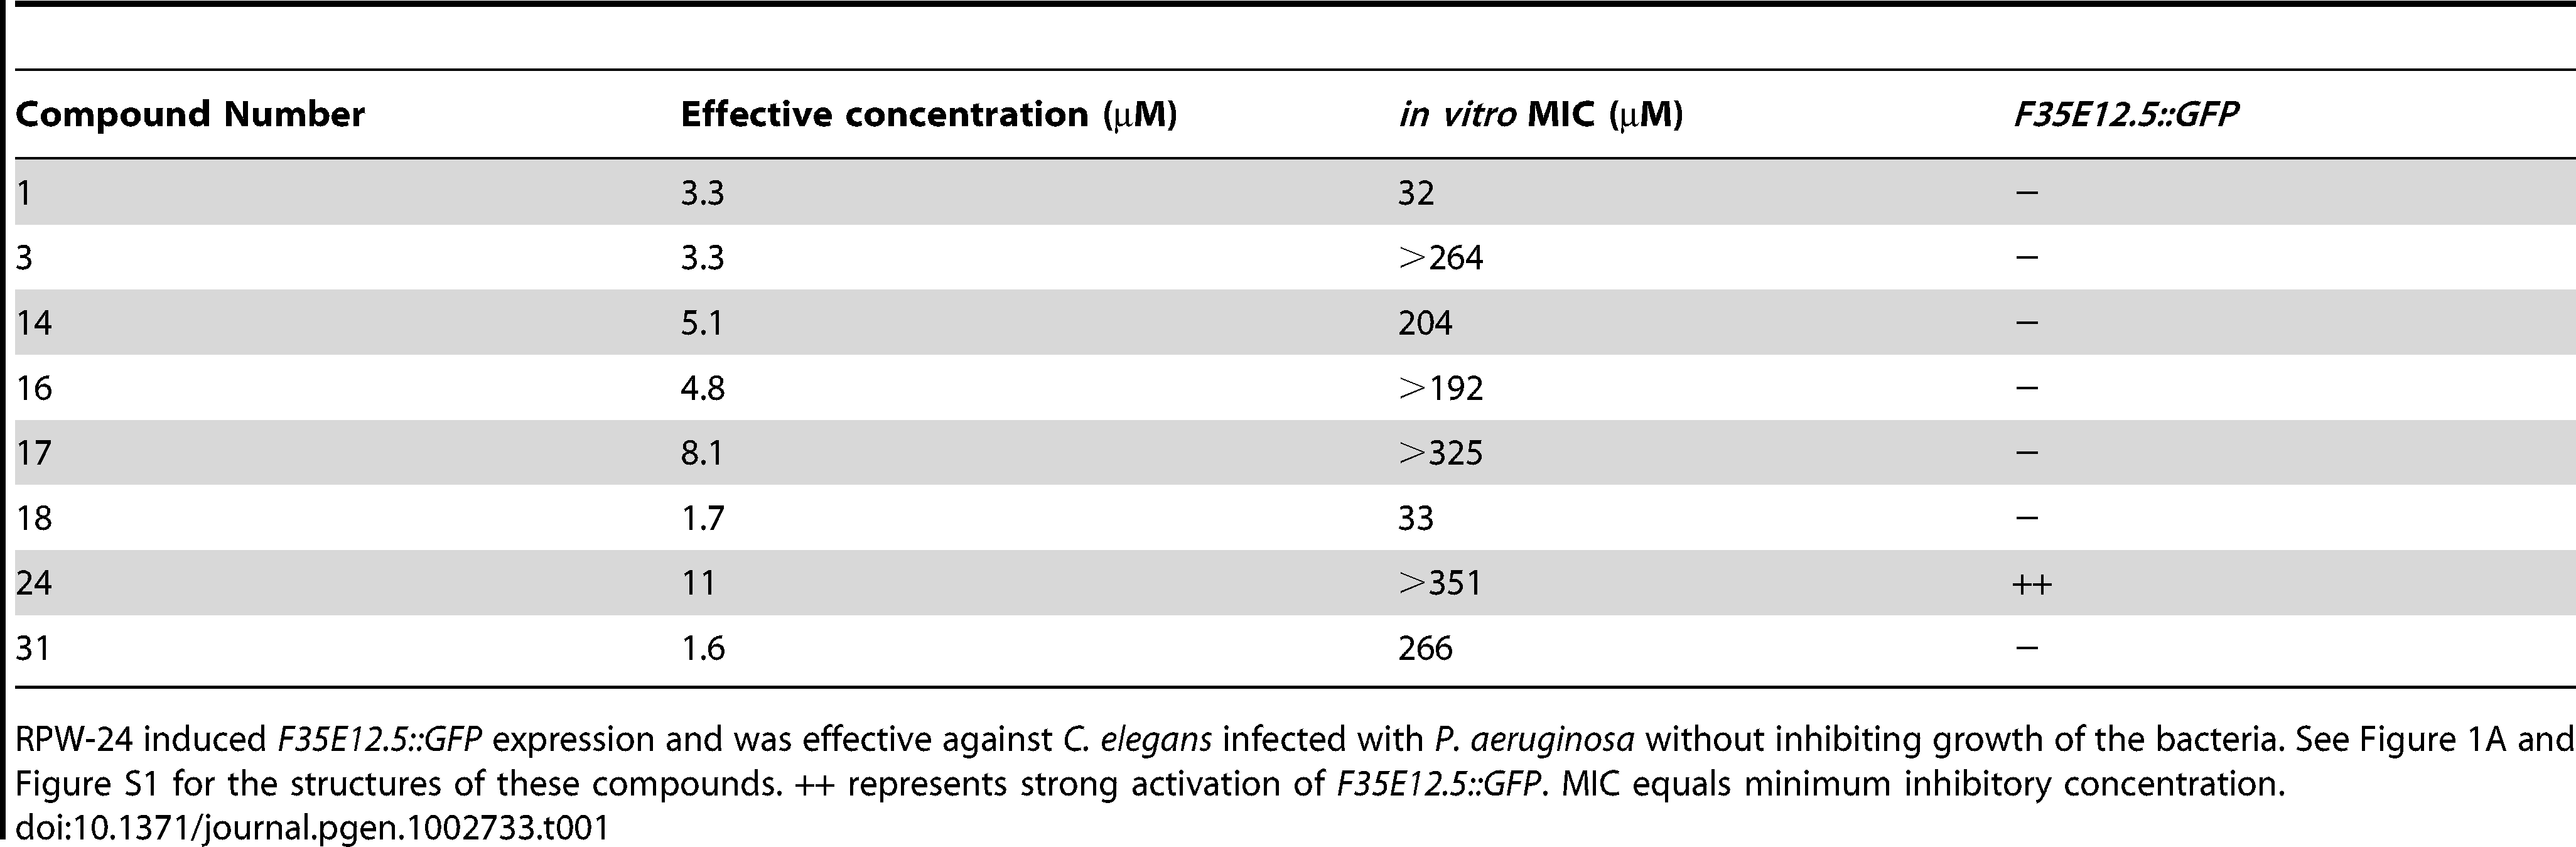 Compounds effective against <i>P. aeruginosa</i> in the <i>C. elegans</i> assay at doses that do not inhibit bacterial growth.